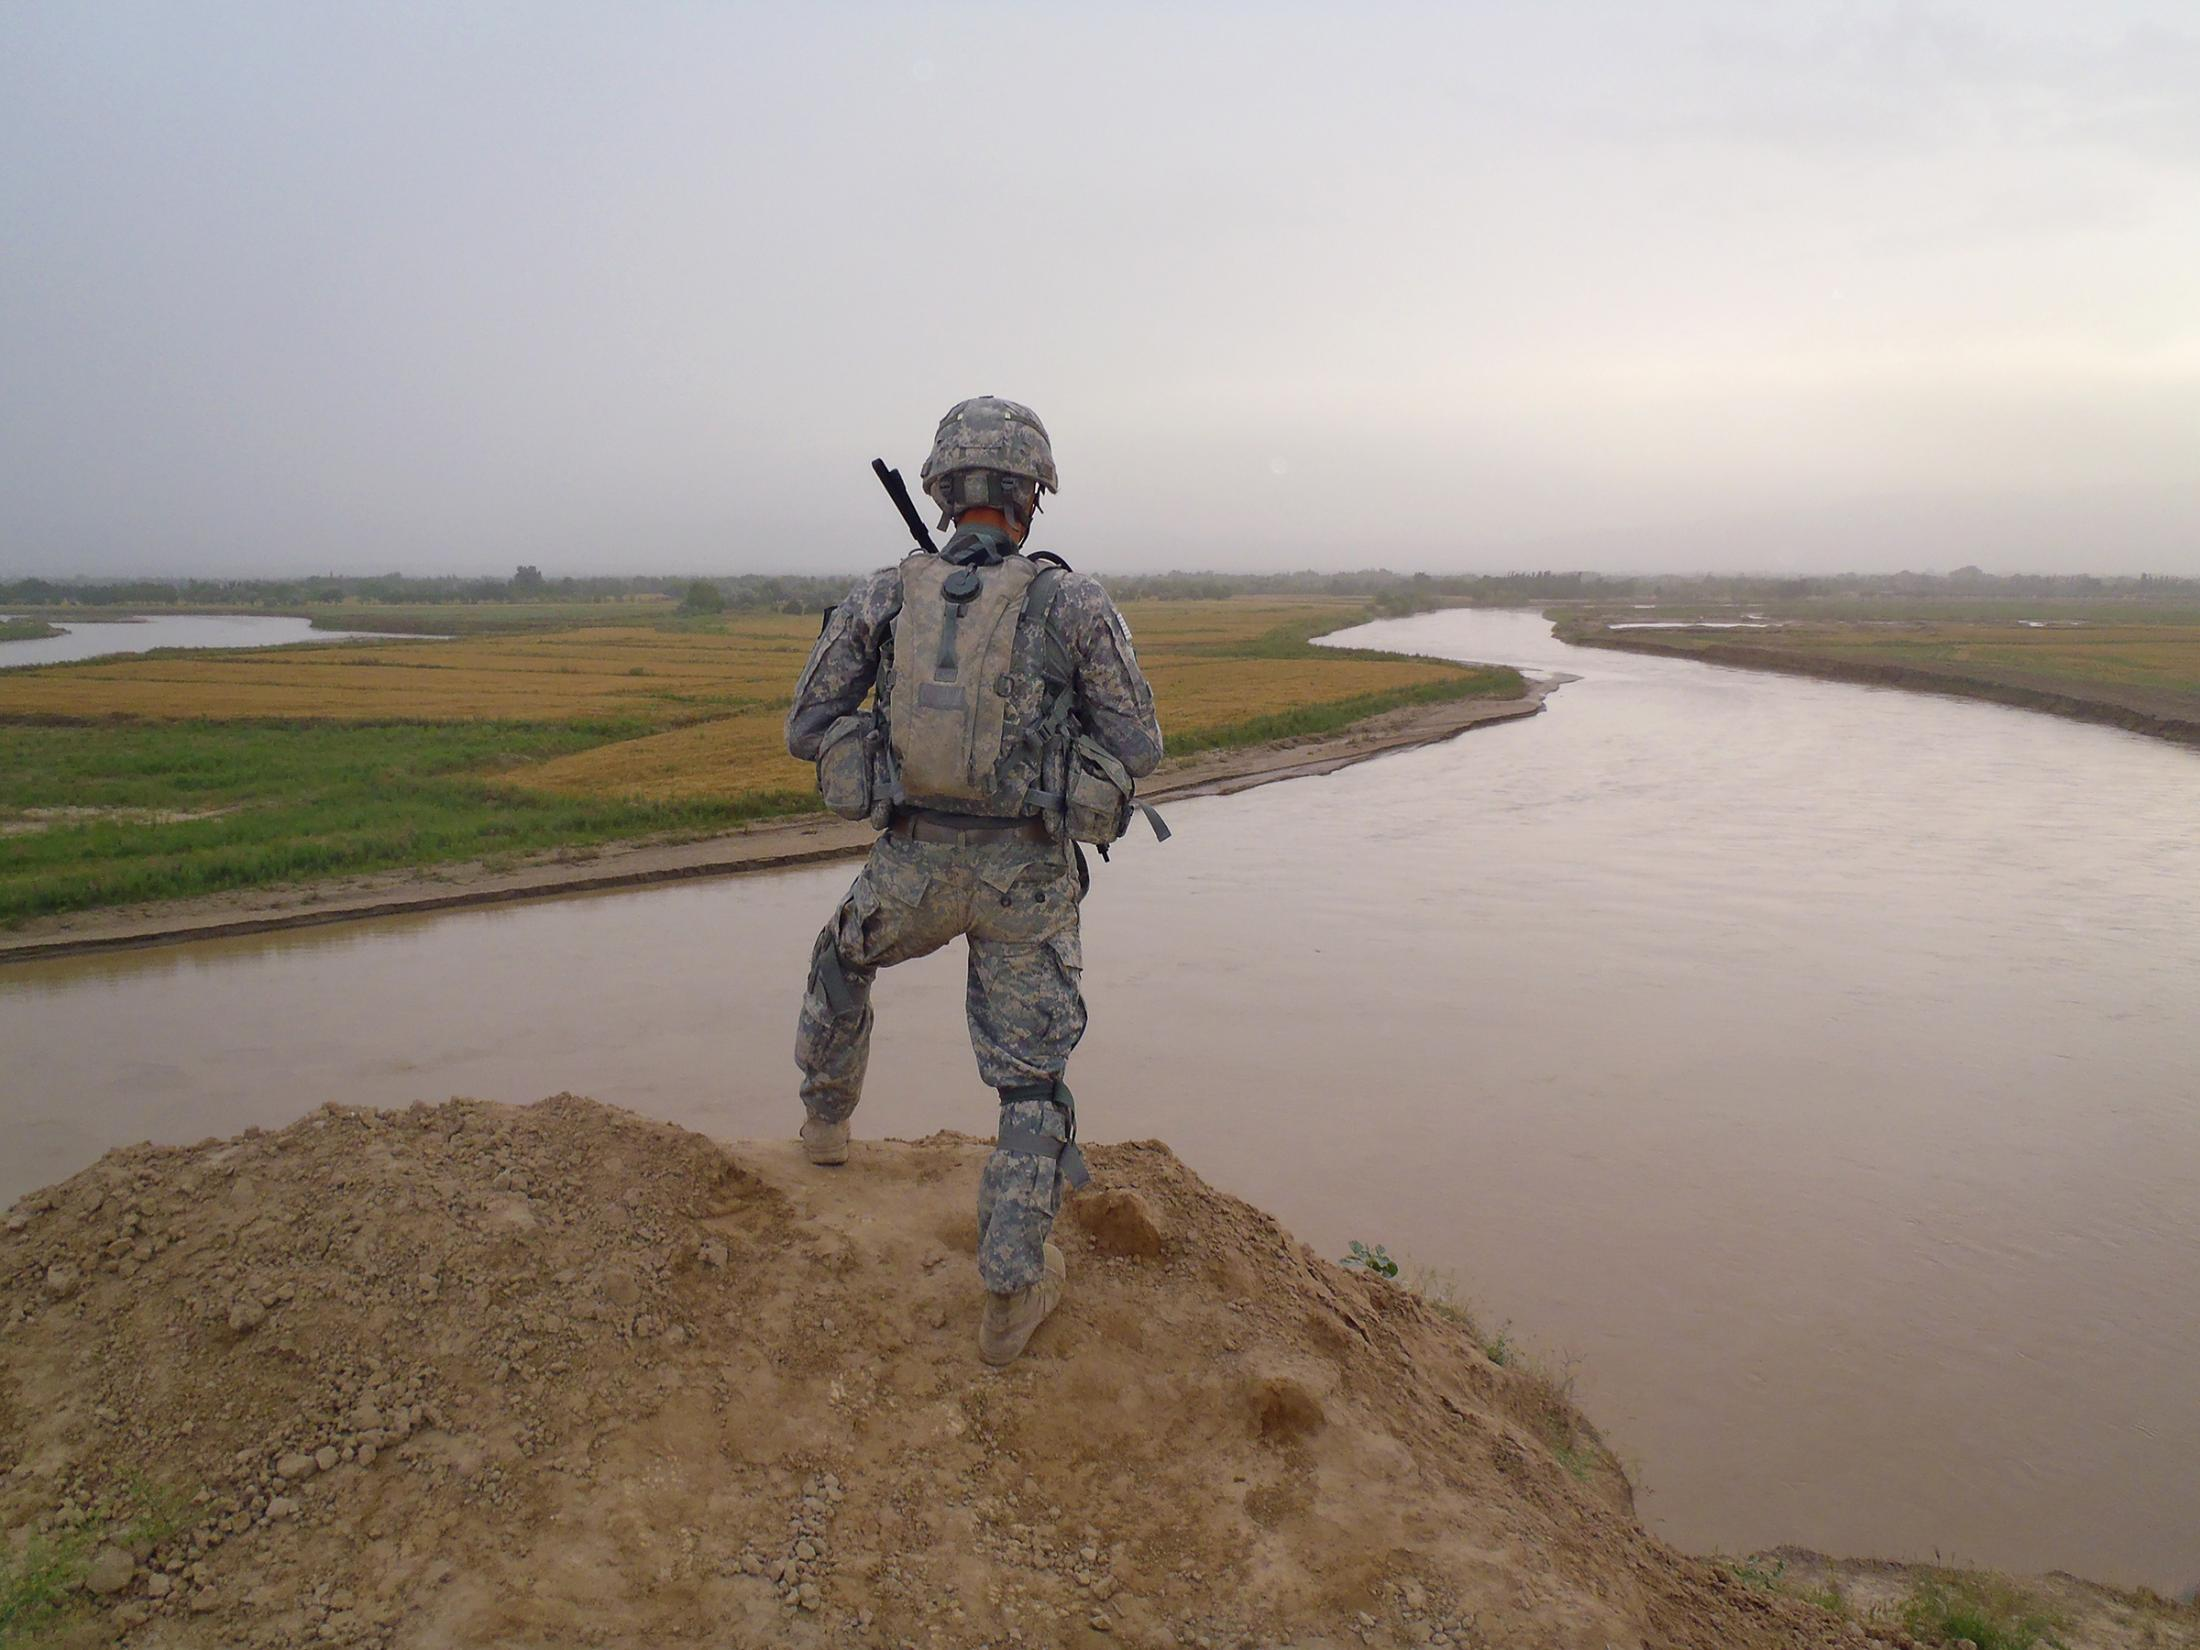 I met John through mutual friends in 2011, shortly after he returned from a combat deployment in Afghanistan. John, who was his unit's unofficial photographer, took this photo of Private First Class Michalik taking in the view in Kunduz, Afghanistan. PHOTOGRAPH BY JOHN PRINCIPE